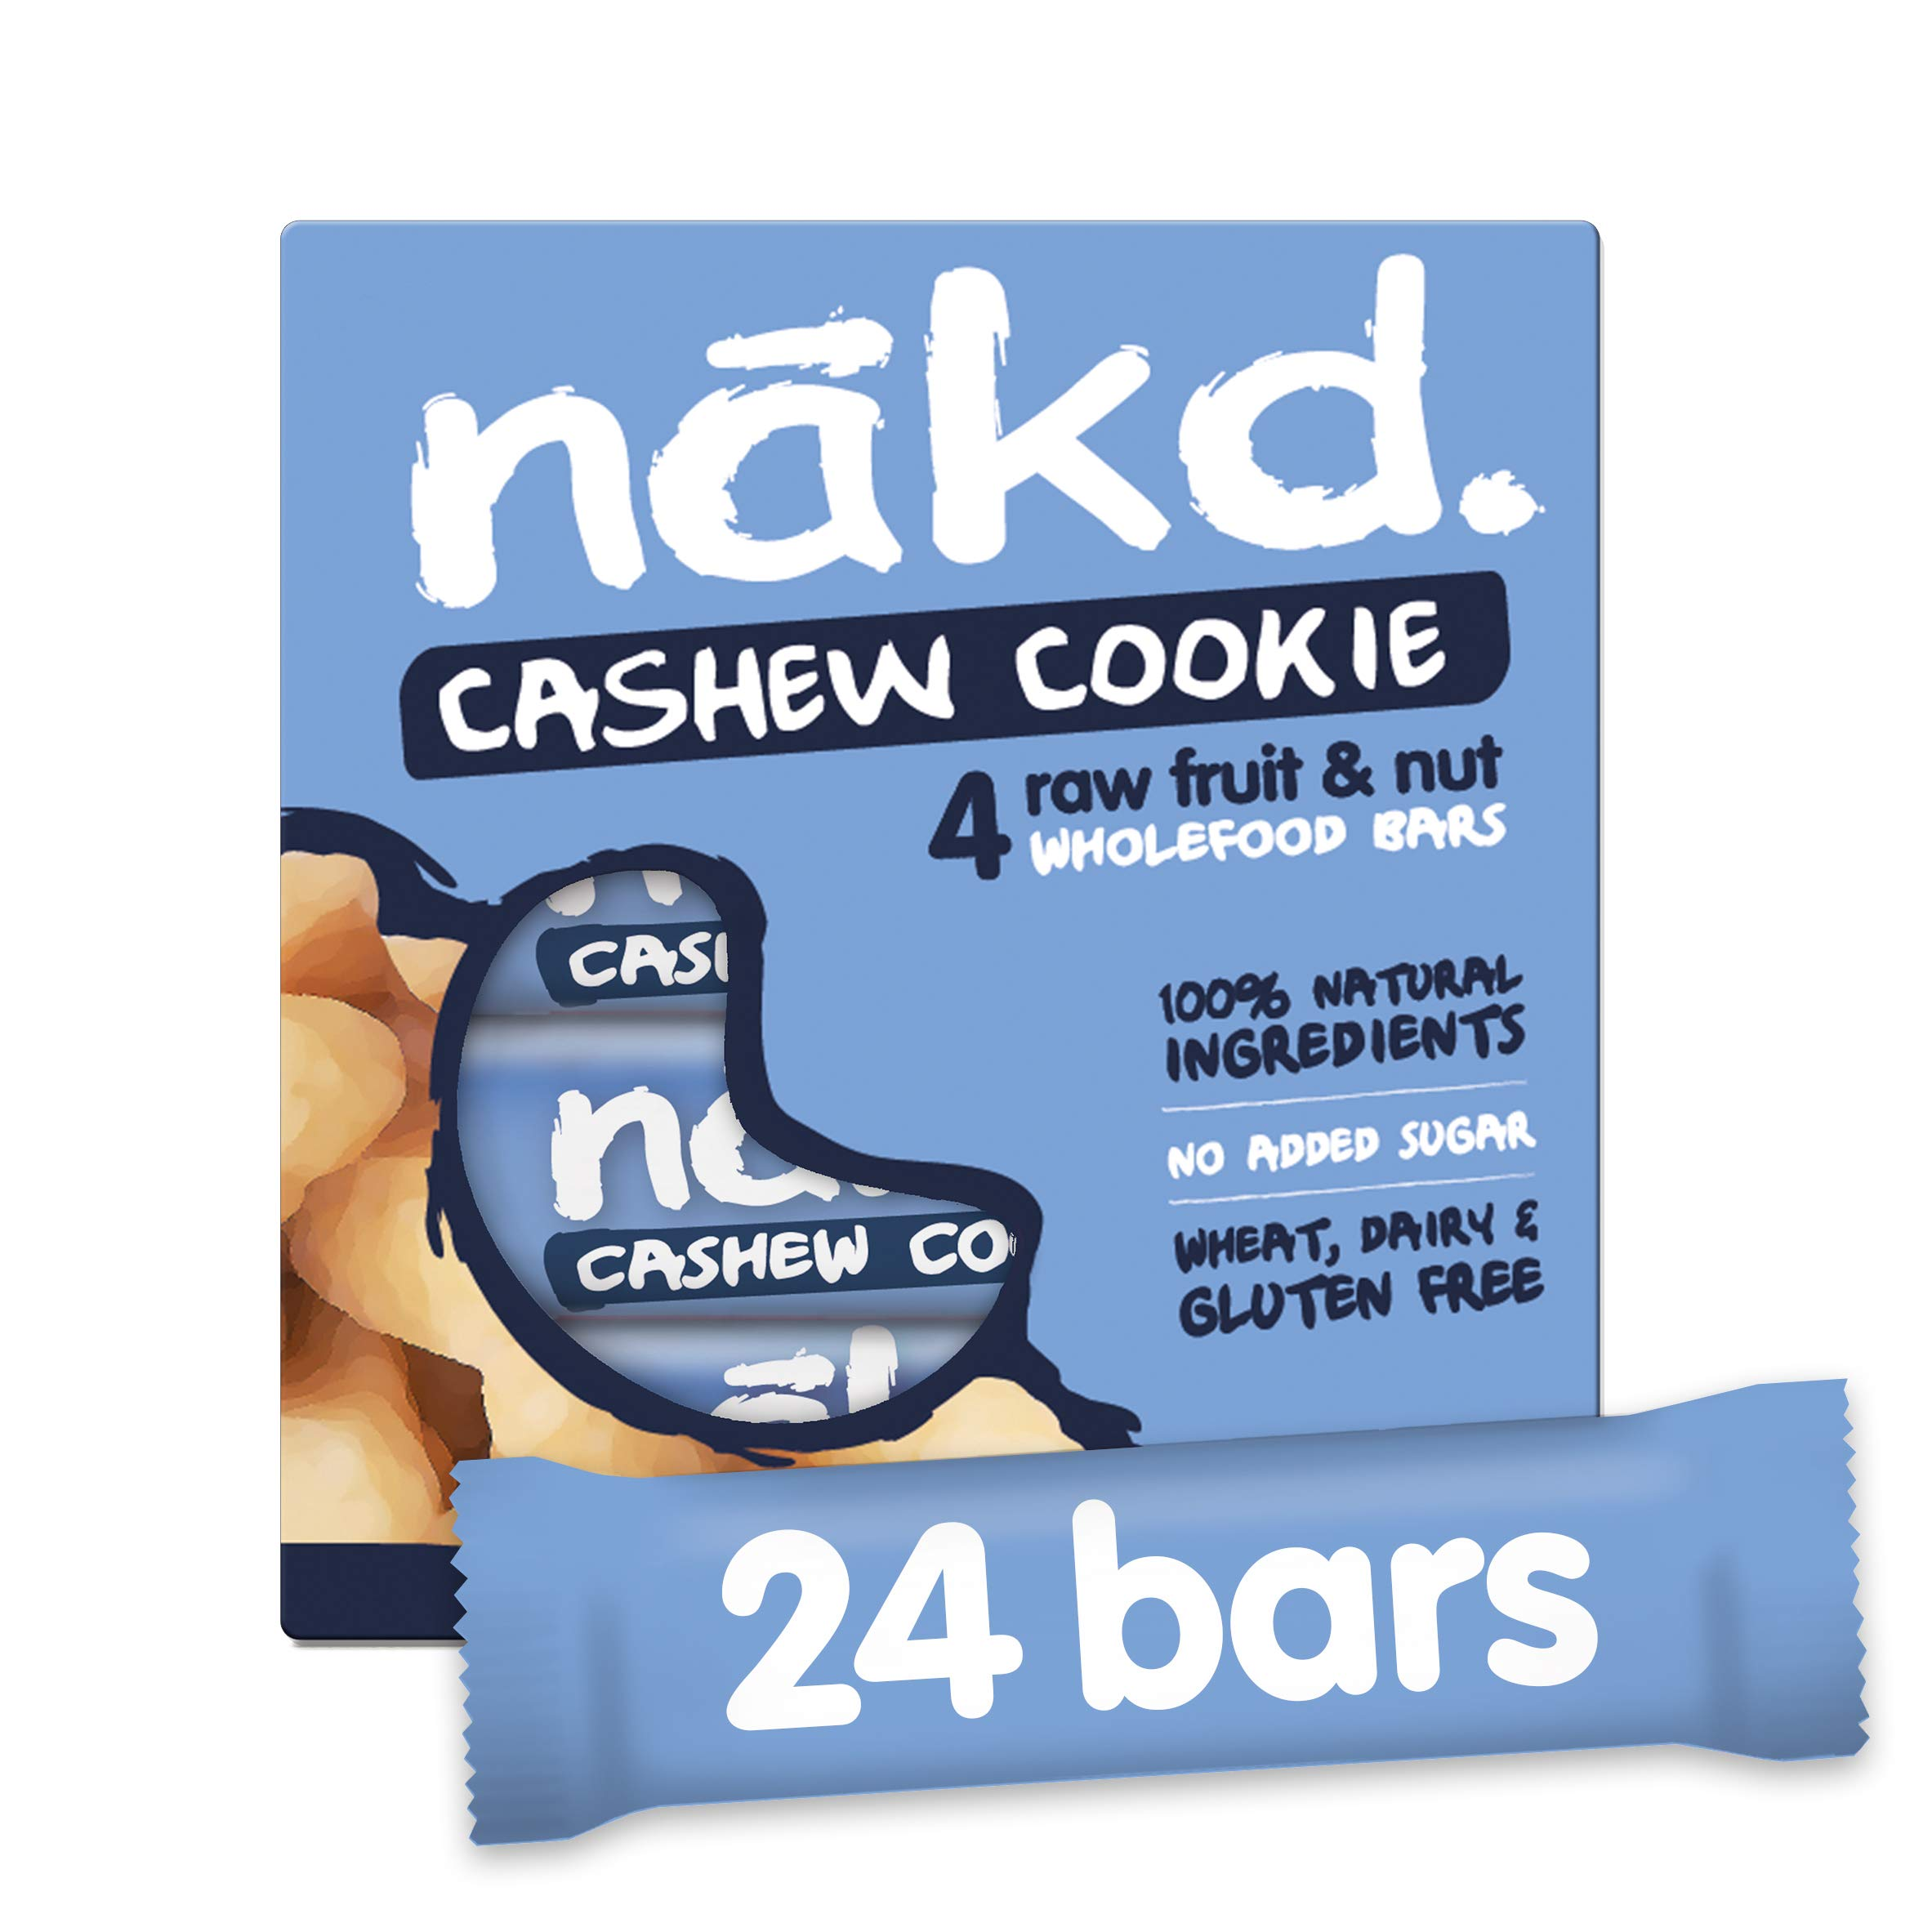 NAKD Cashew Cookie 35g bar - Multi Pack case of 24 Bars